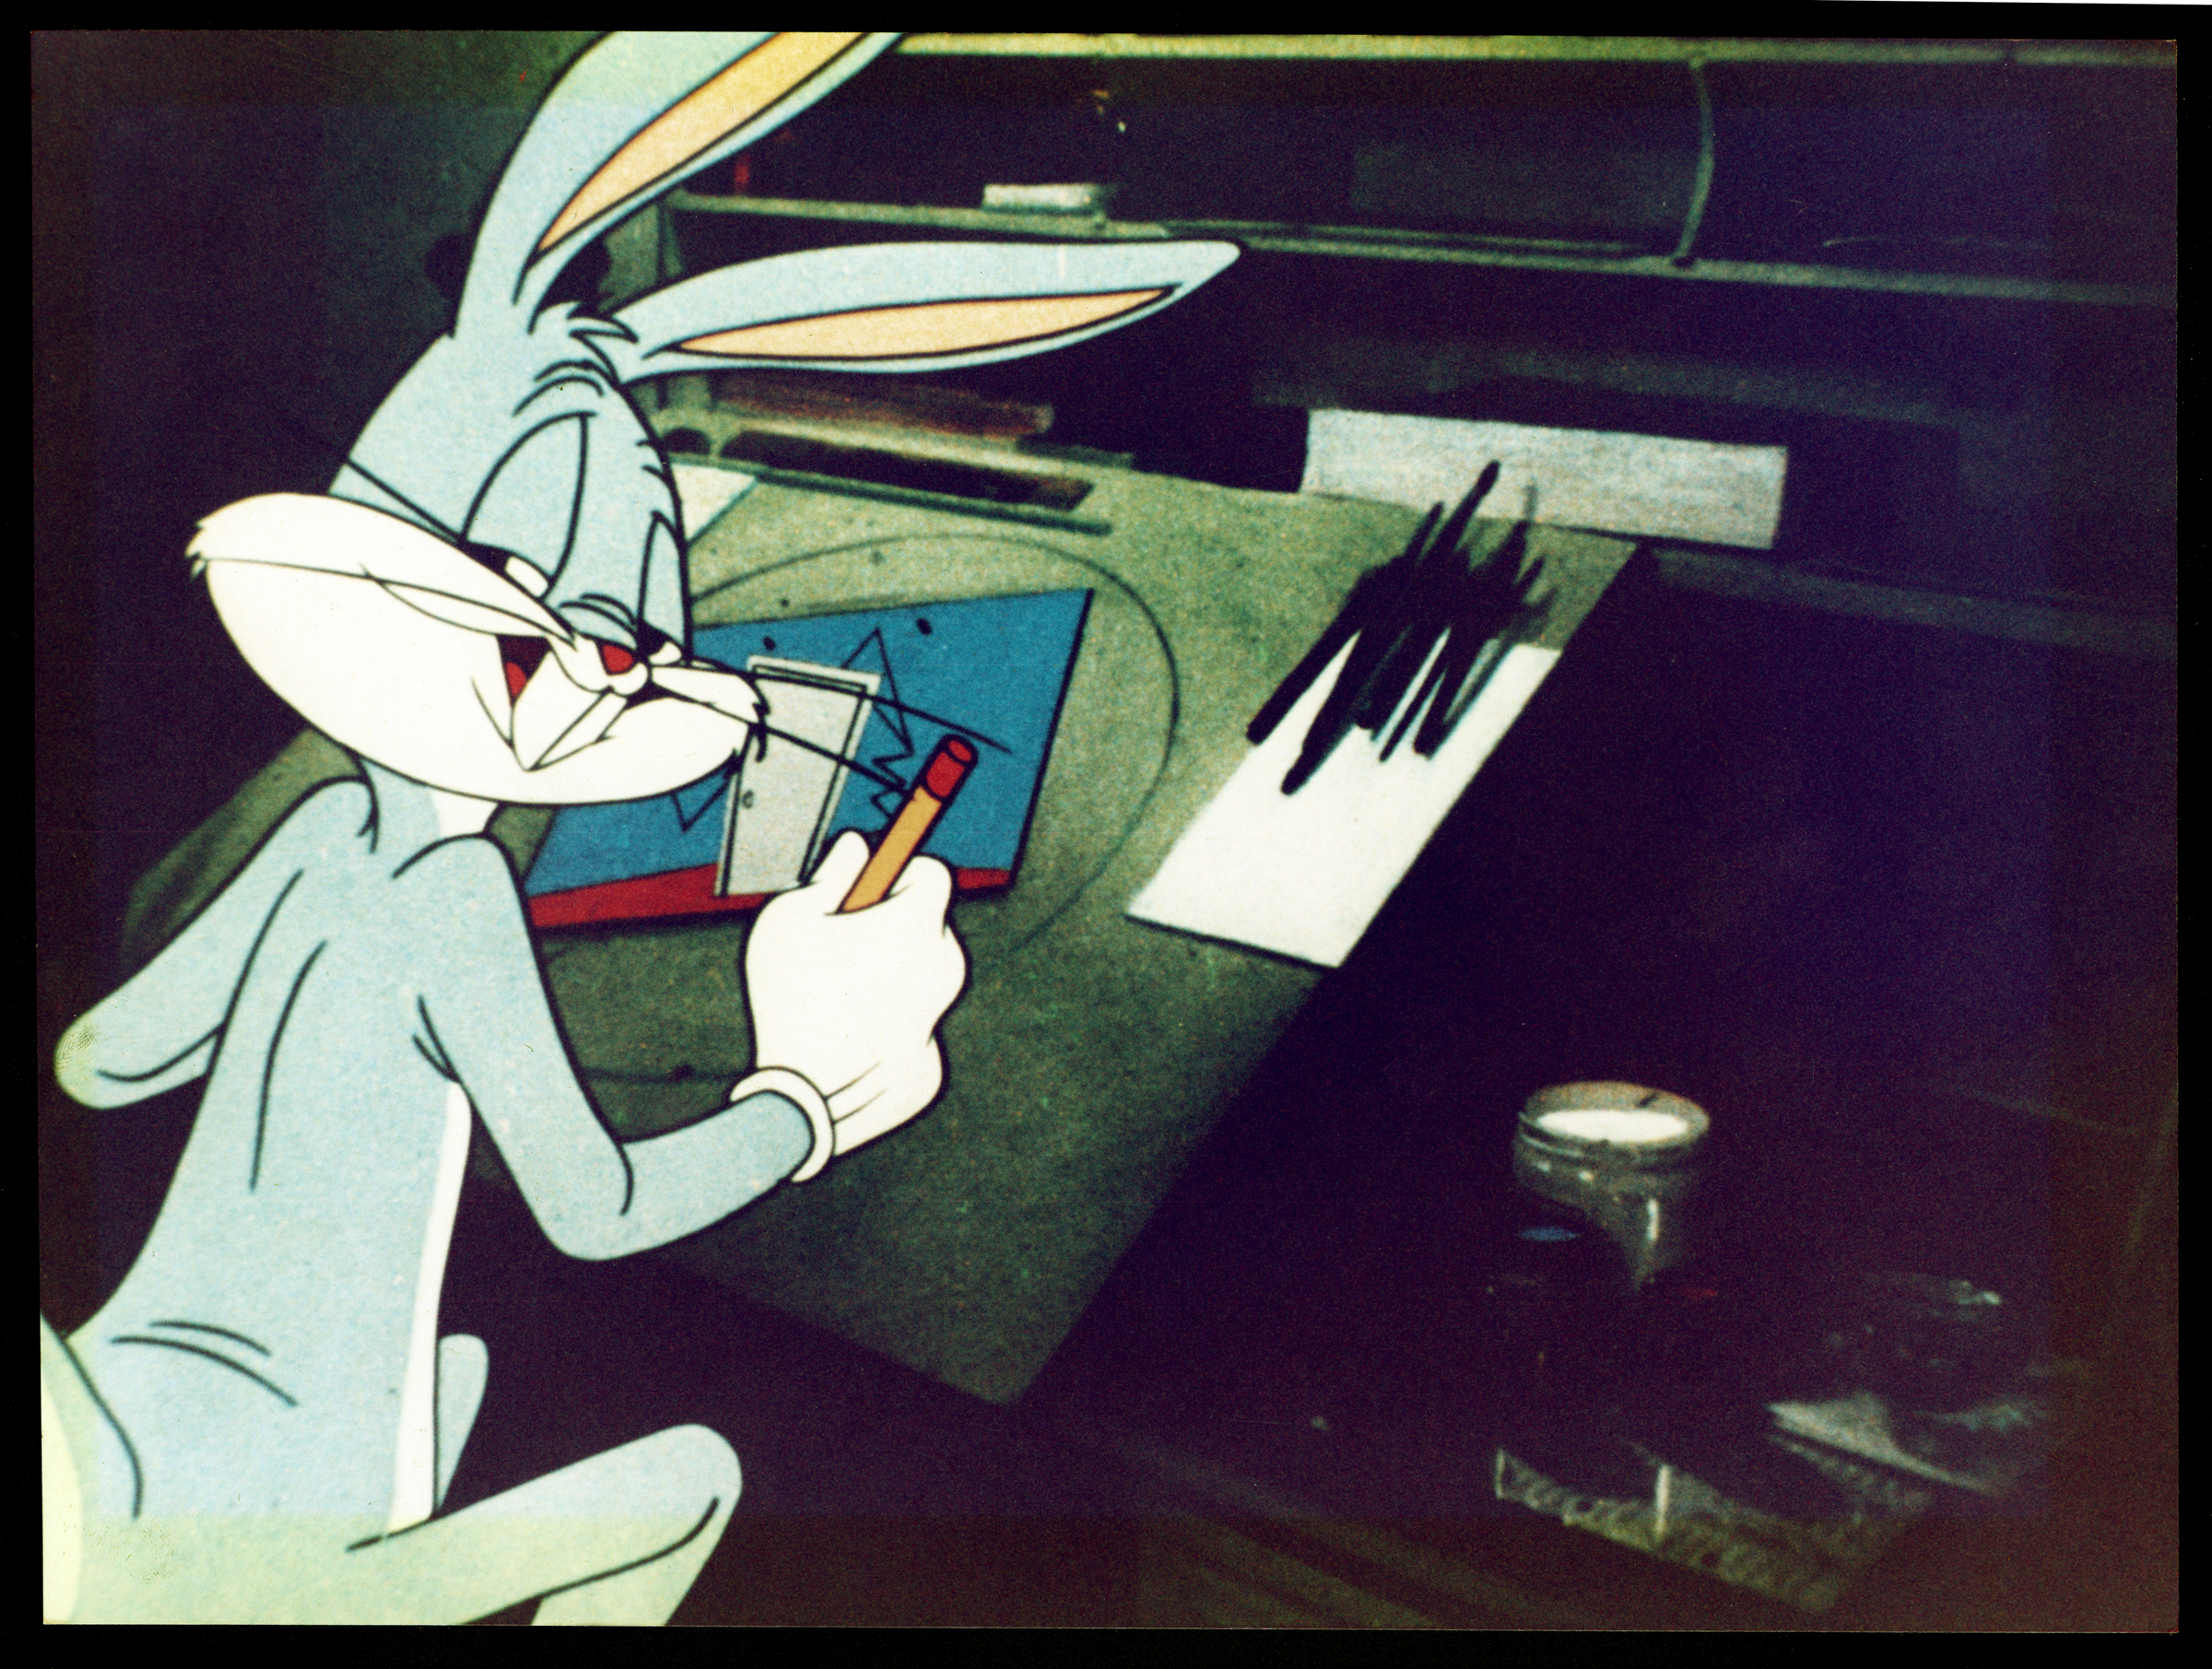 Courtesy of The Chuck Jones Center for Creativity Looney Tunes Characters © & TM Warner Bros.